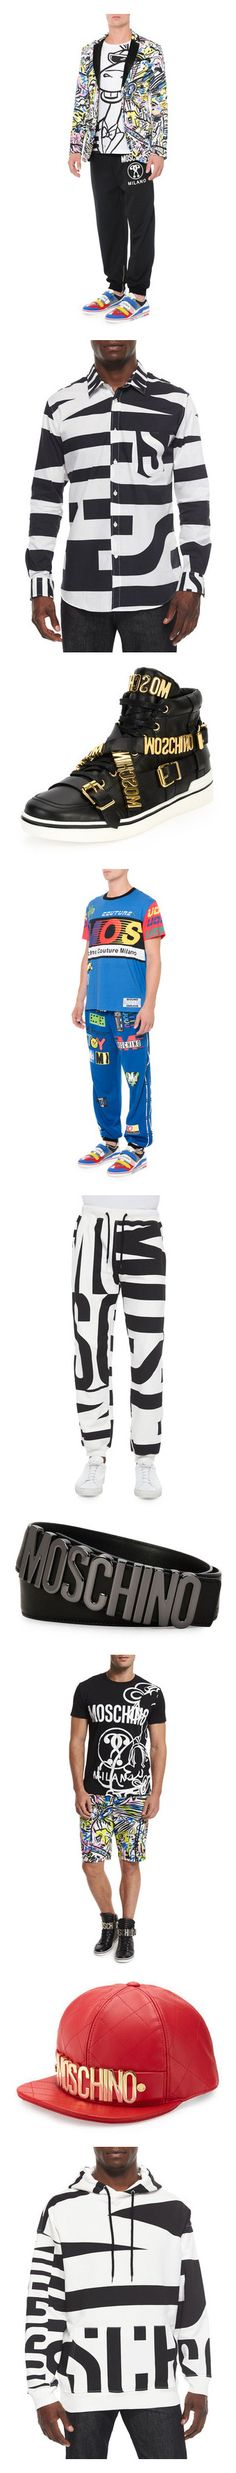 """""""Moschino Men's Collection"""" by neimanmarcus ❤ liked on Polyvore featuring activewear, activewear jackets, neon activewear, logo sportswear, moschino, comic book, men's fashion, men's clothing, men's shirts and men's casual shirts"""